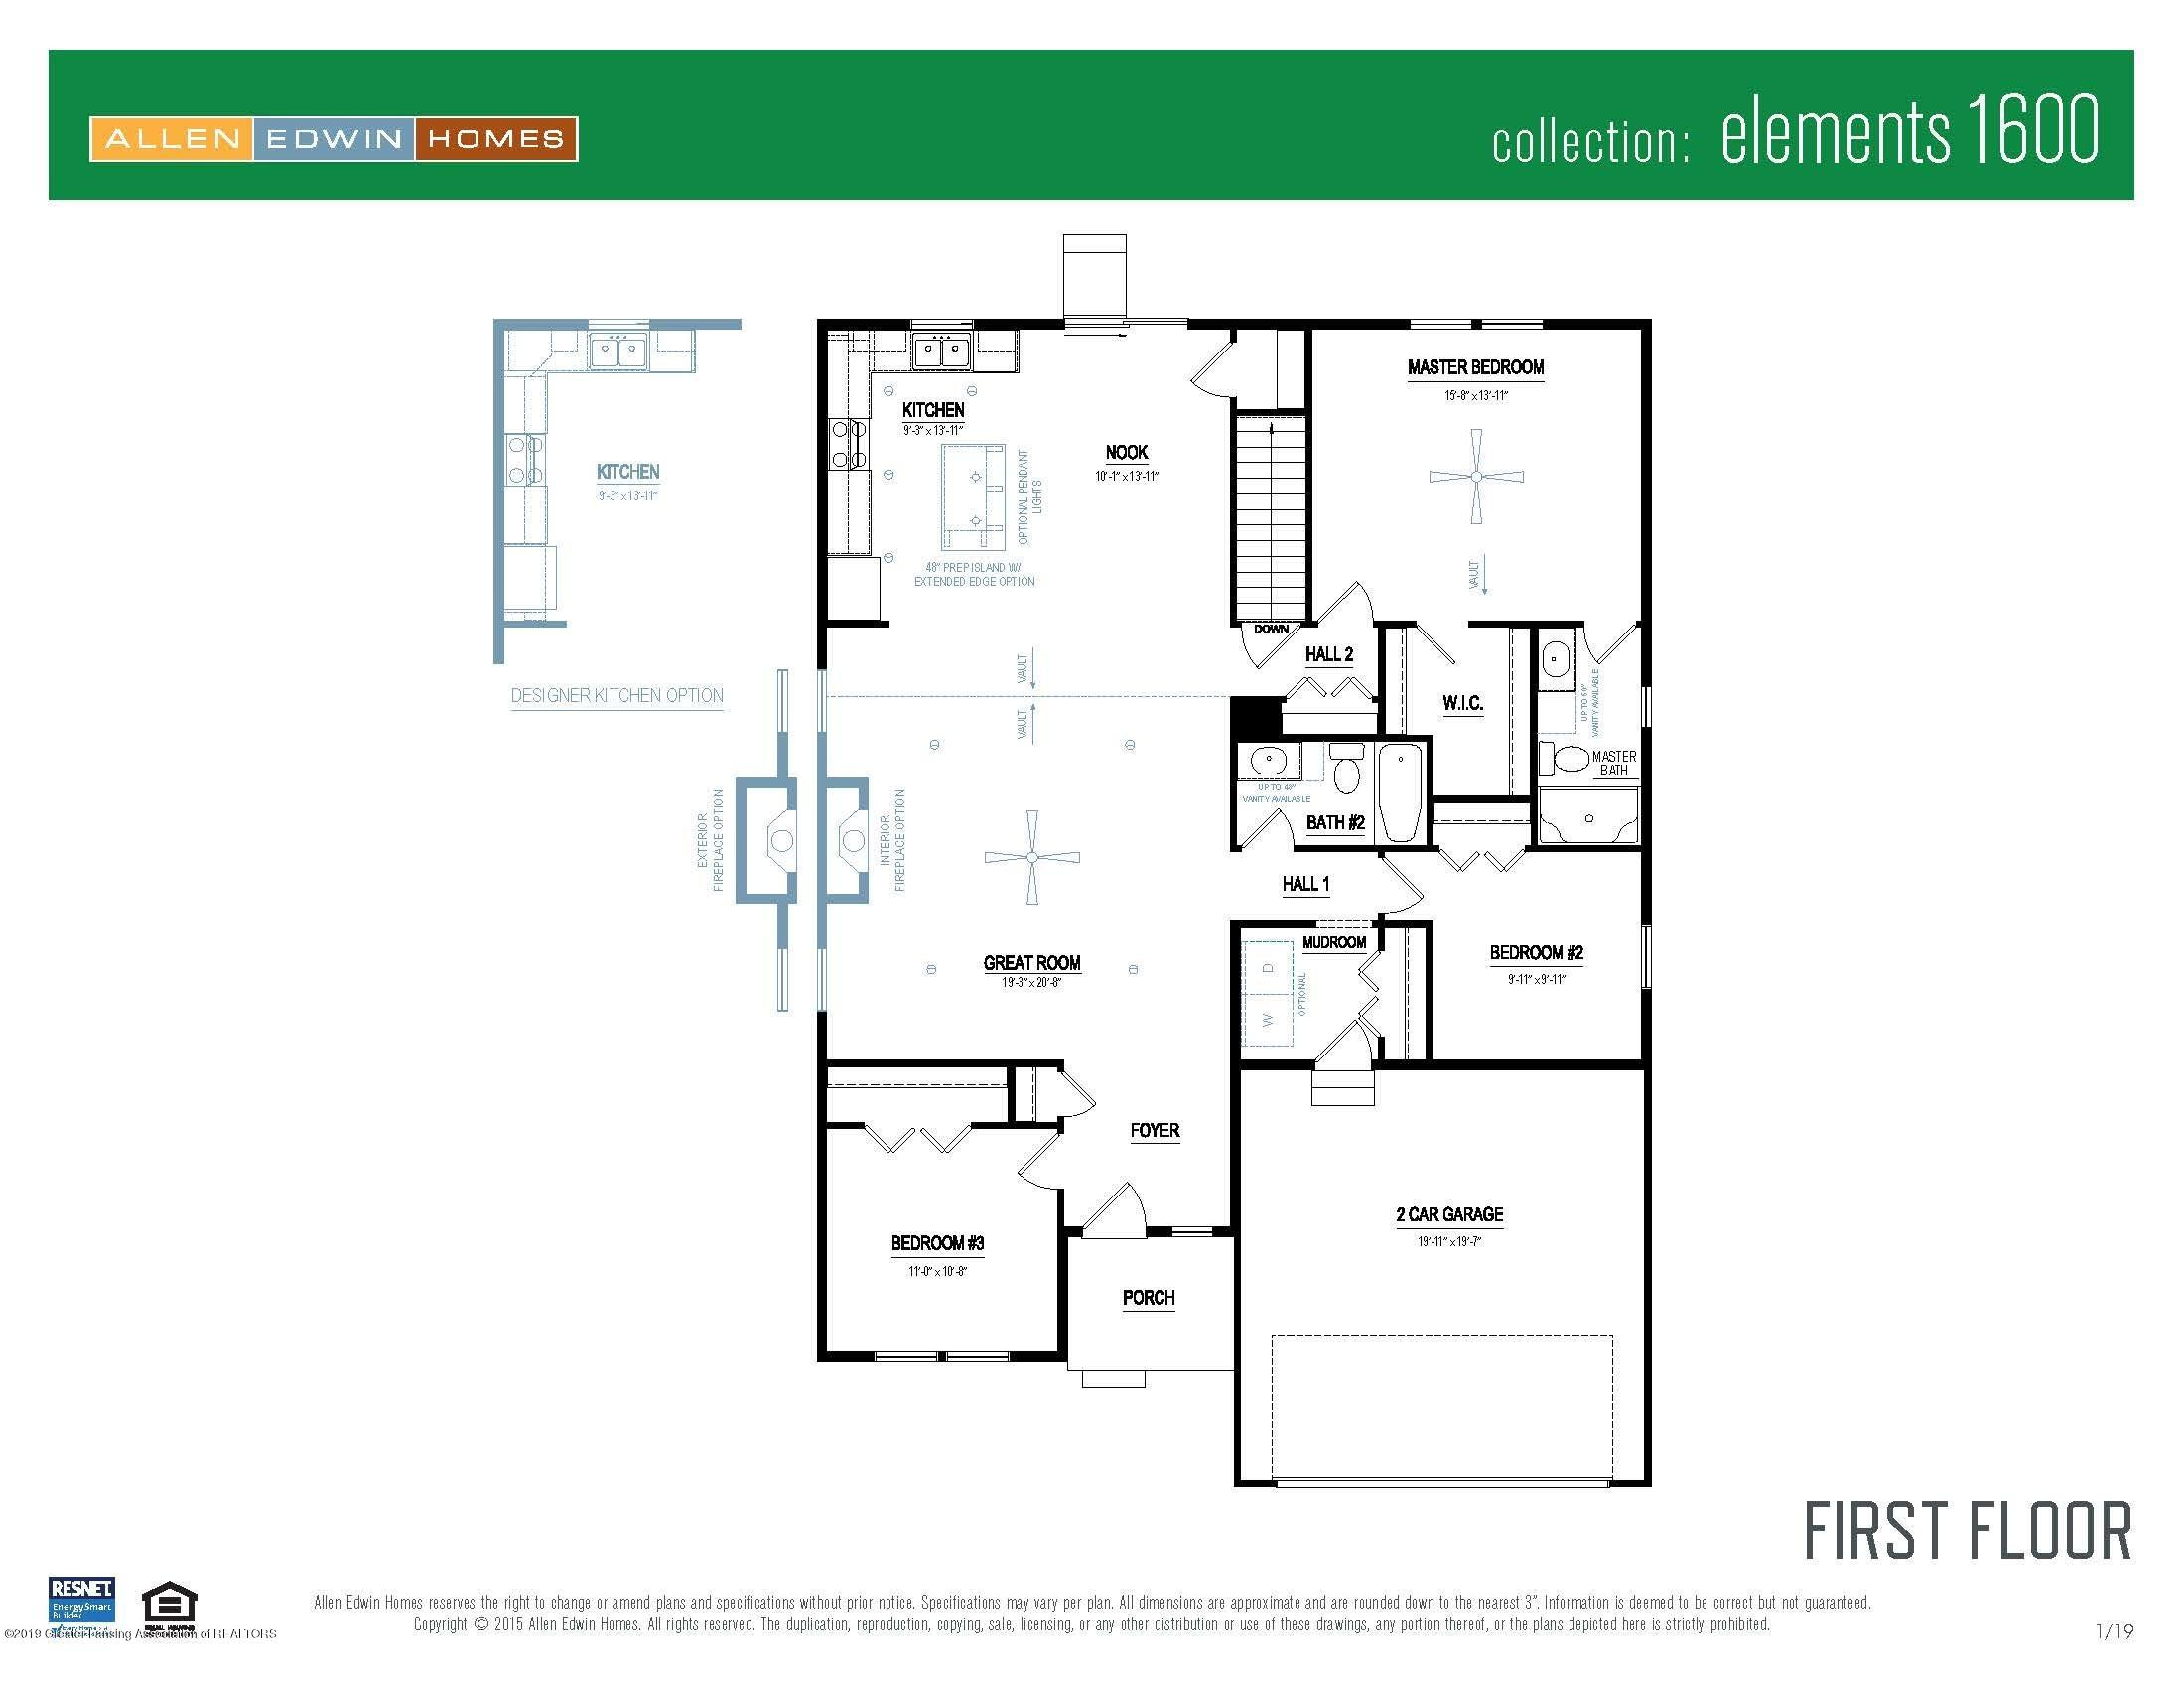 14171 Cordaleigh Dr - Elements 1600 V8.0a First Floor - 16